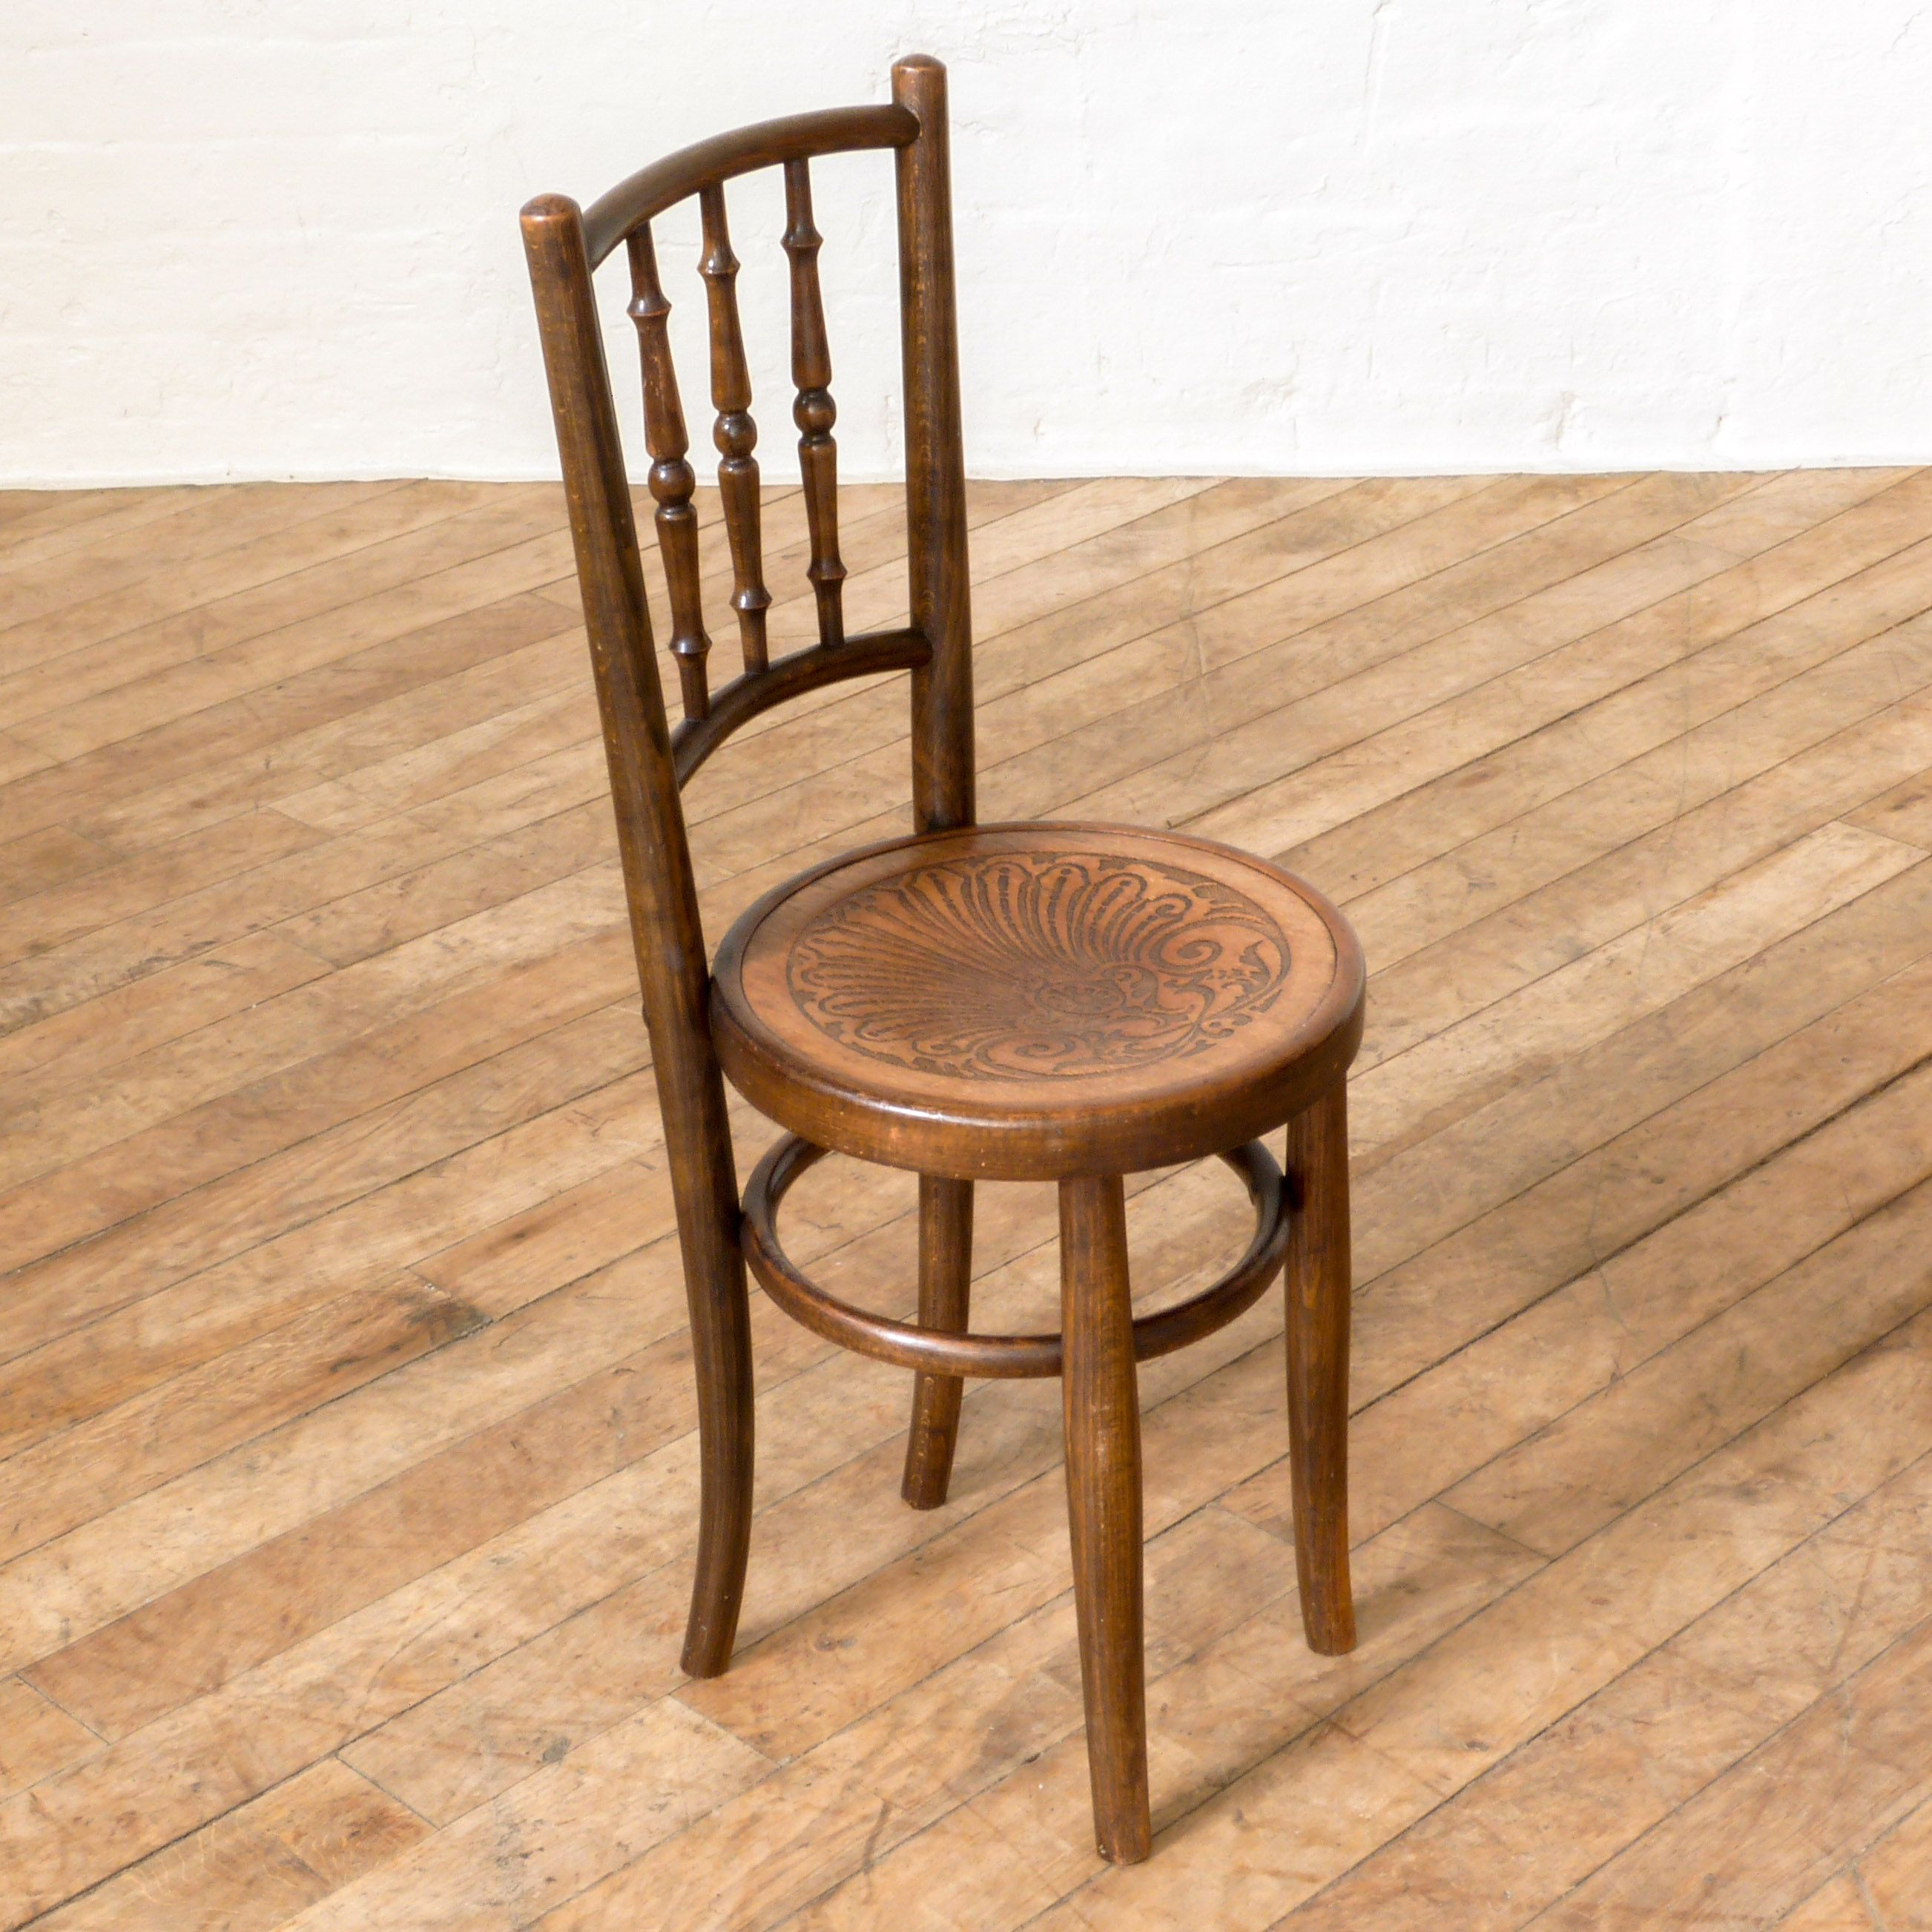 Muebles Fischel - An Attractive High Back Child S Bentwood Chair This Mid Sized [mjhdah]https://i.pinimg.com/originals/0d/3c/0a/0d3c0a9e8089f3d56cbb9b3952500d53.jpg